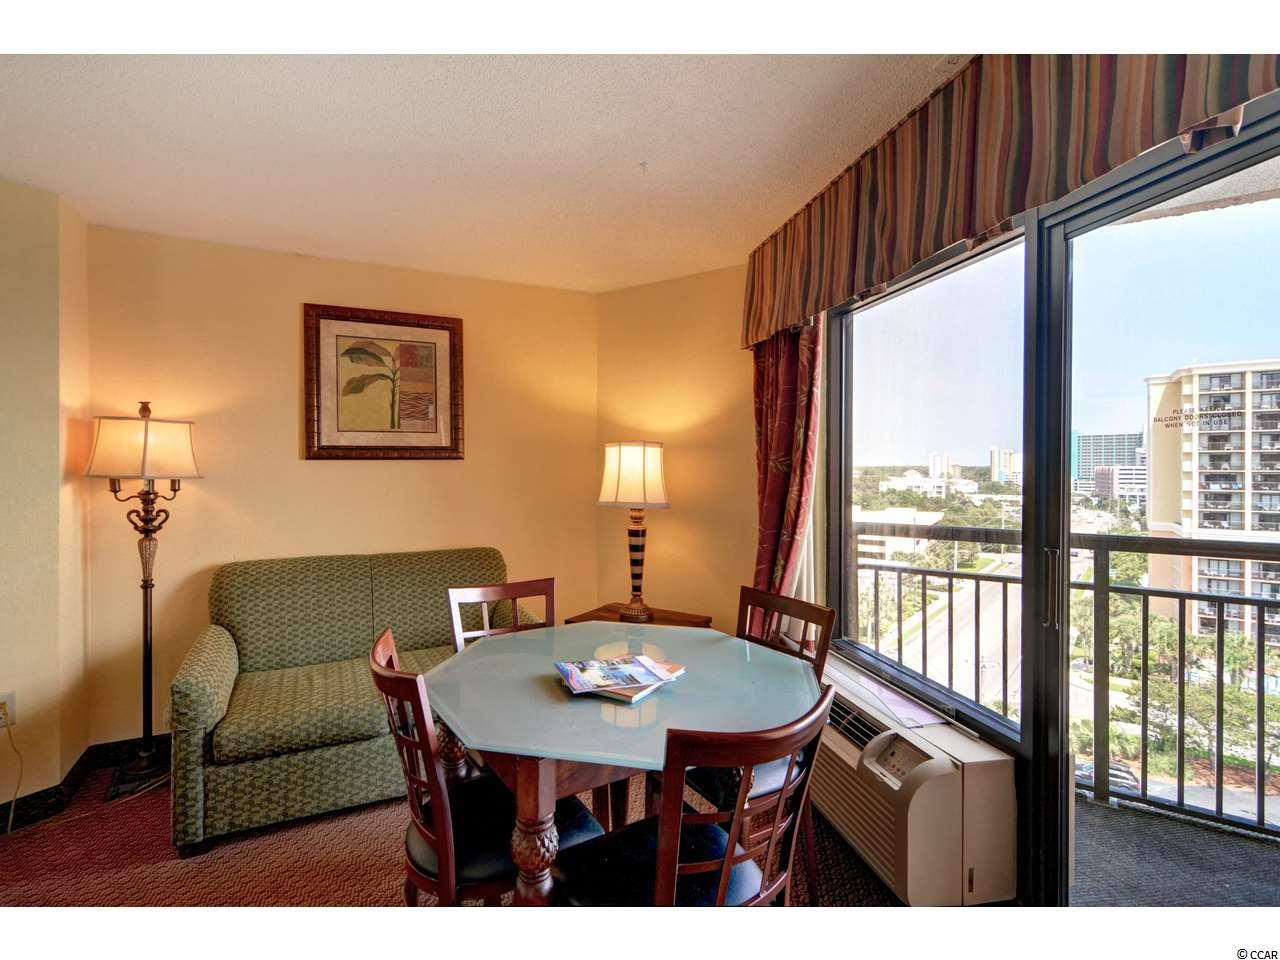 Condo for sale at monterey bay suites resort in myrtle beach south carolina unit listing mls for 1 bedroom suites in myrtle beach sc